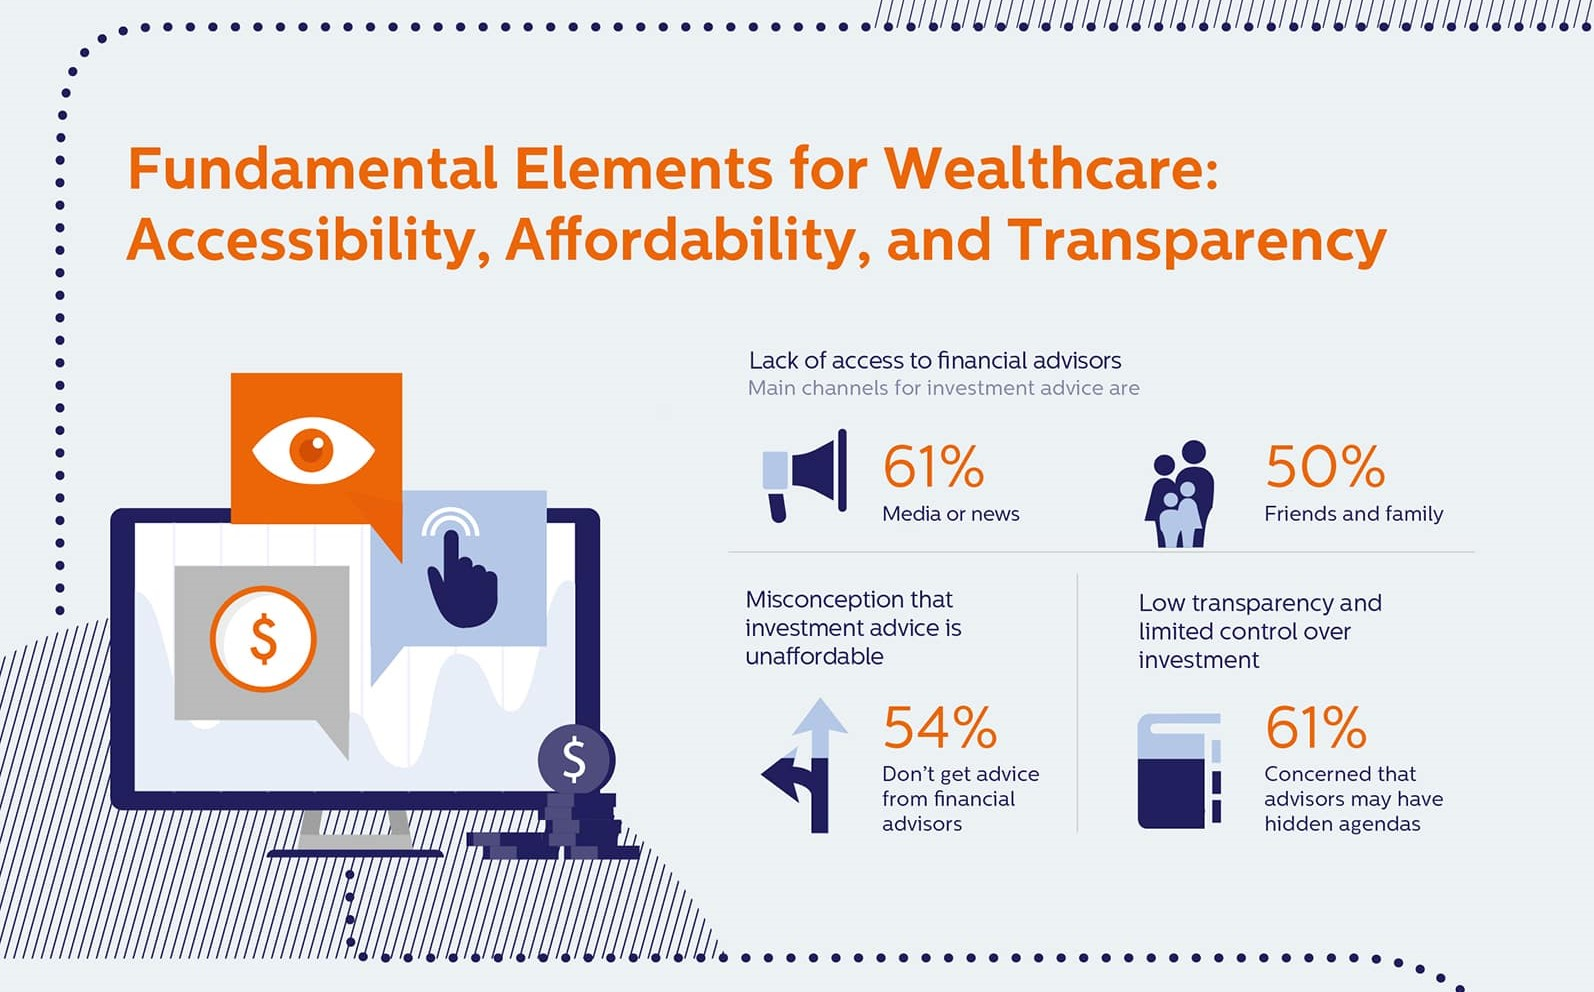 Fundamental Elements for Wealthcare: Accessibility, Affordability, and Transparency